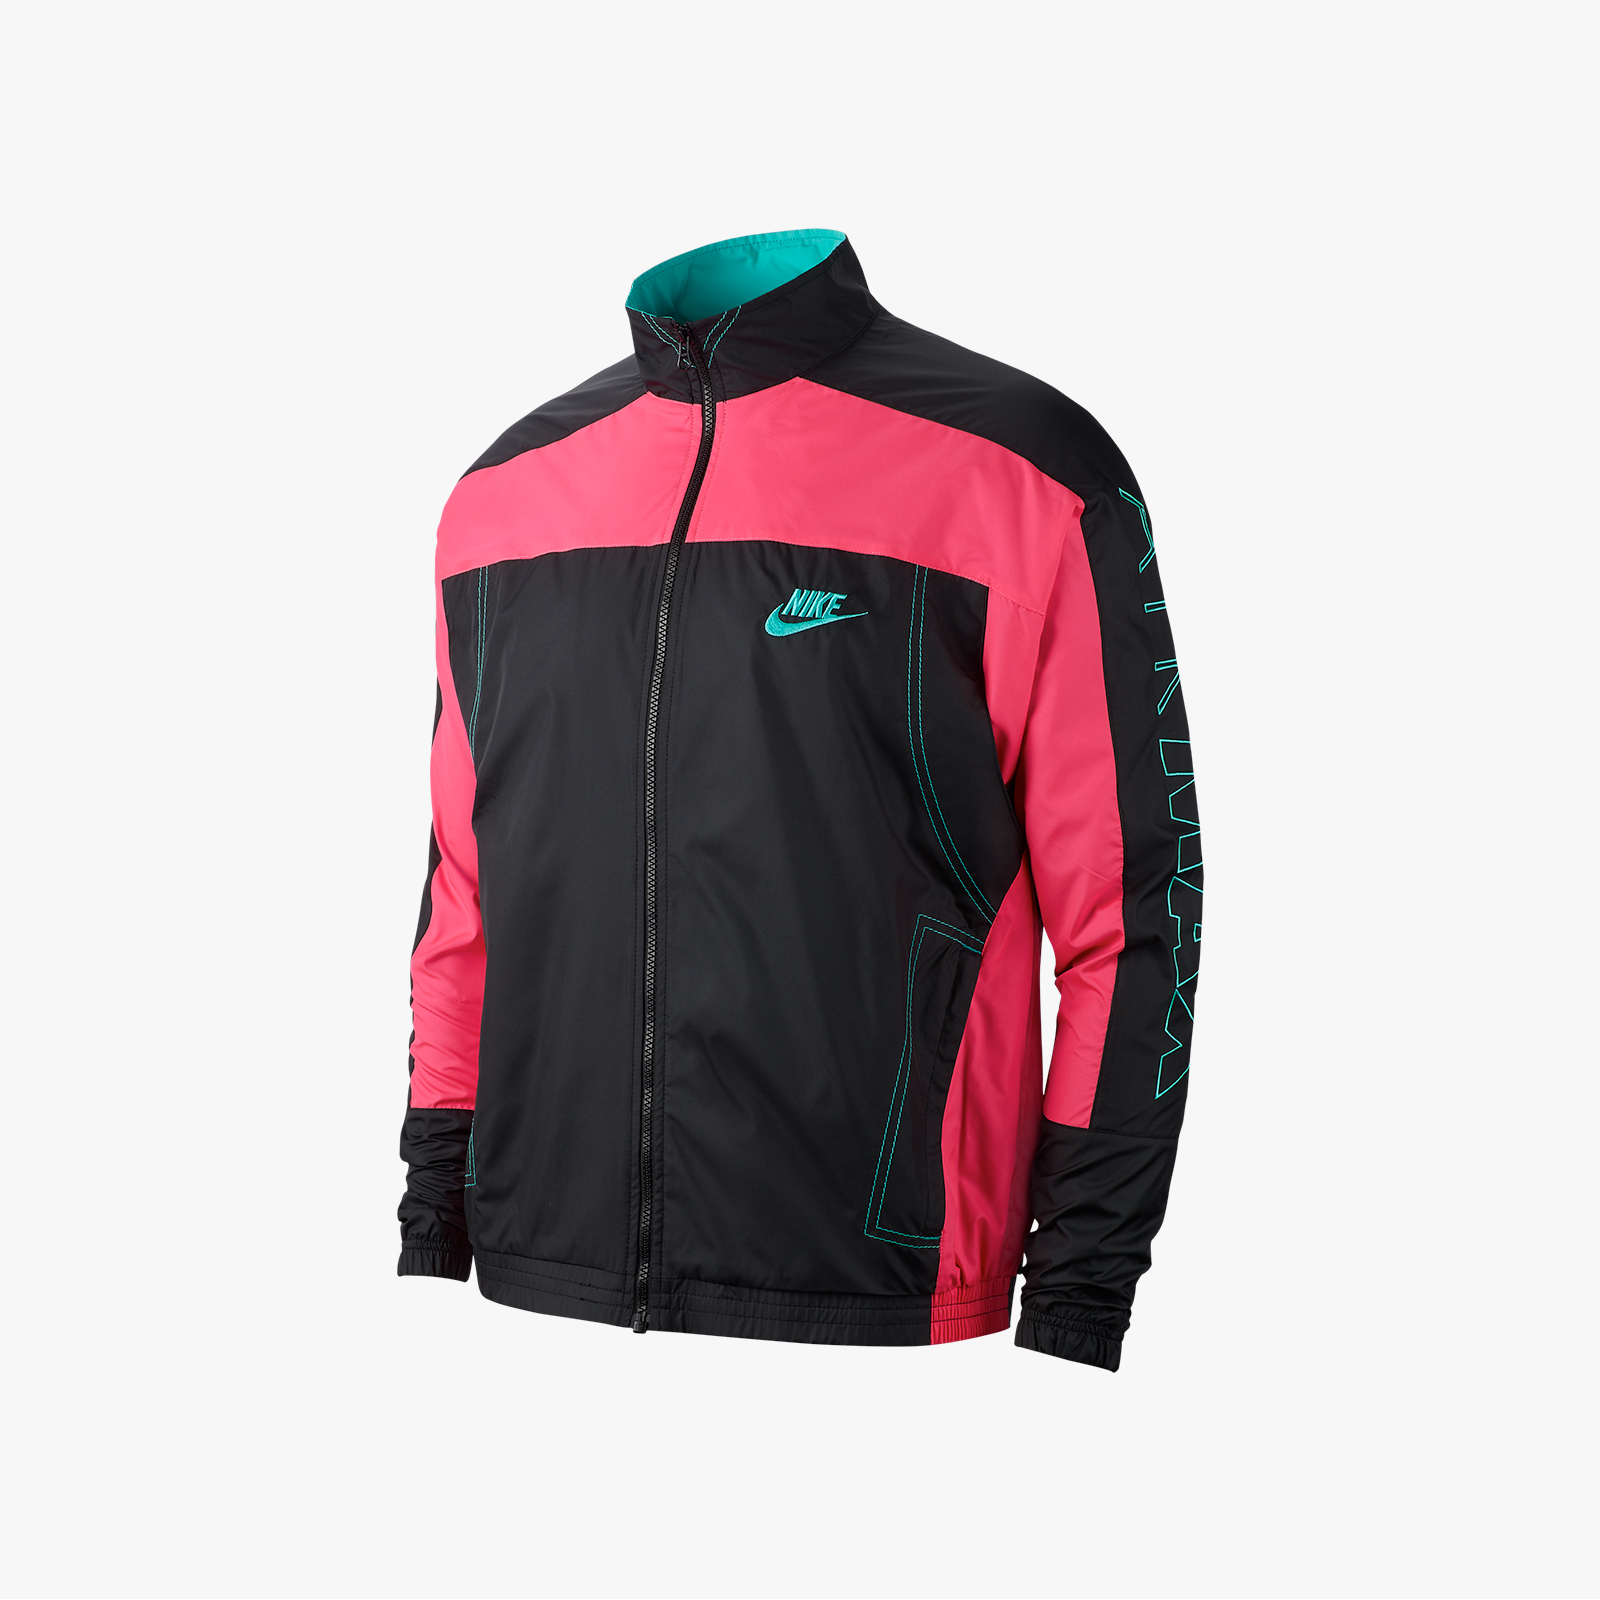 fbbe81e3f6 Nike Atmos Vintage Patchwork Track Jacket - Cd6132-011 ...